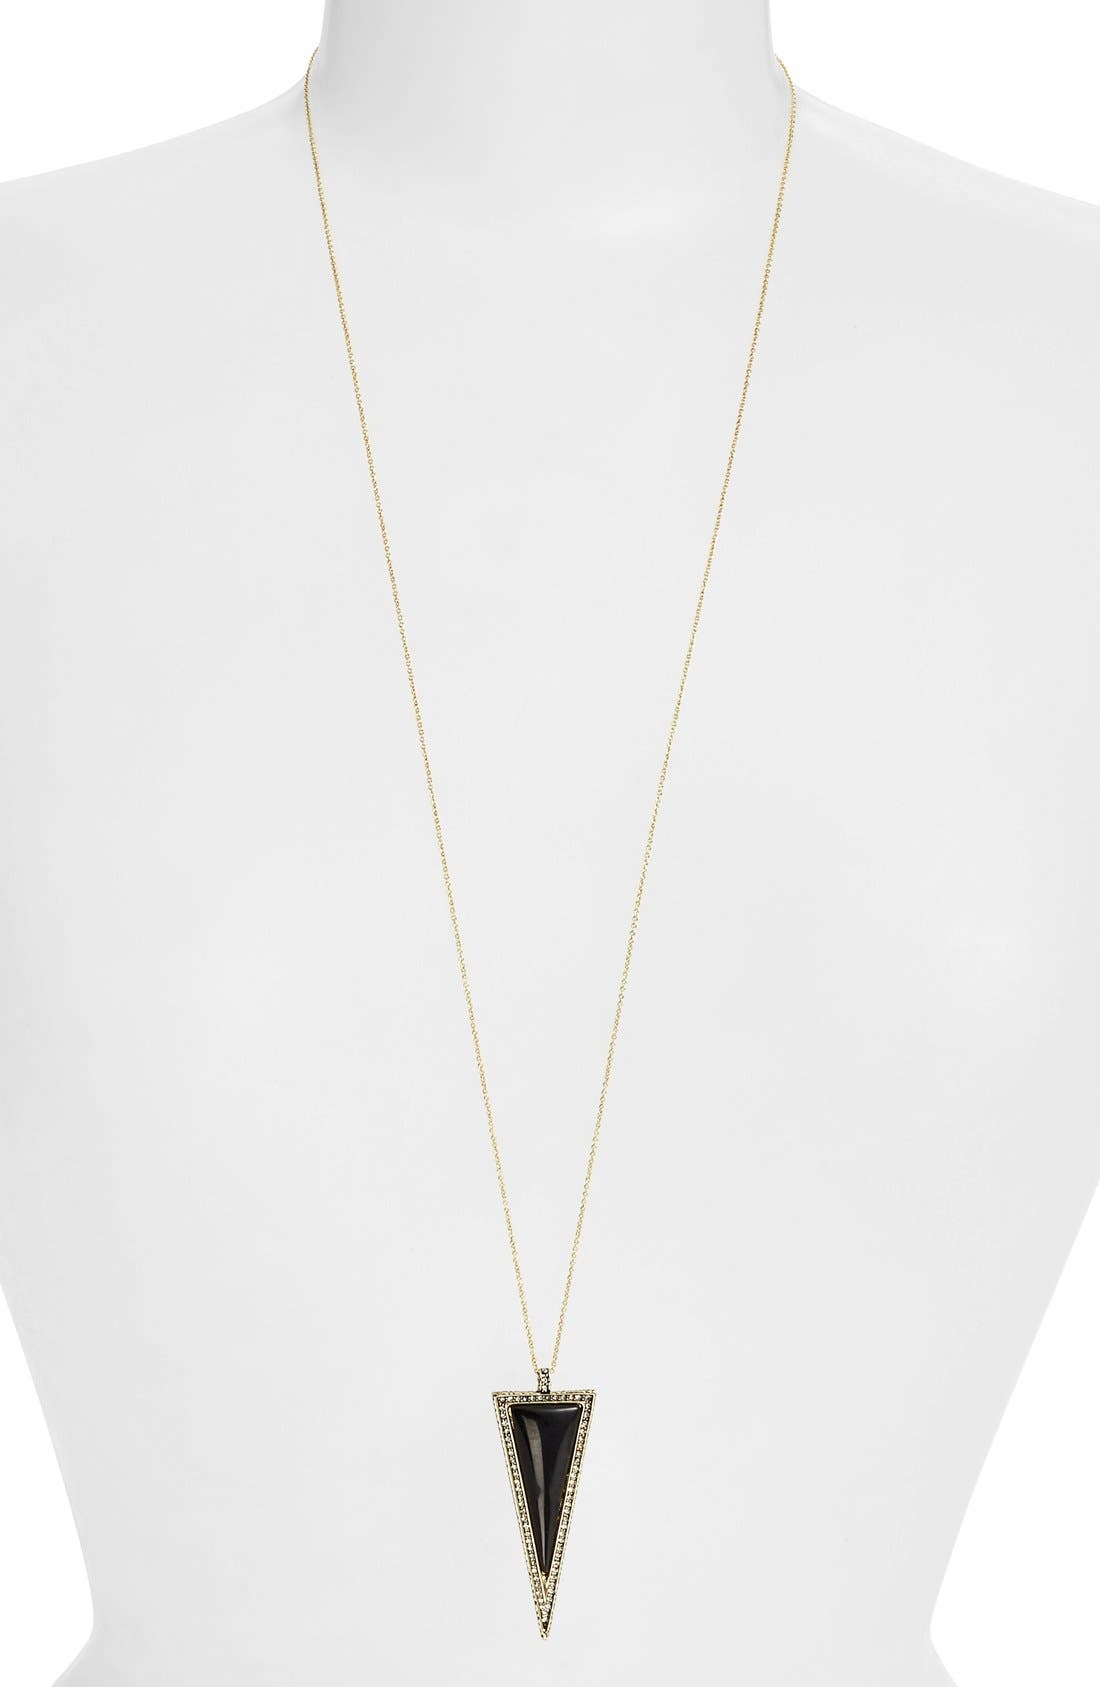 Alternate Image 1 Selected - House of Harlow 1960 'Delta' Triangle Pendant Necklace